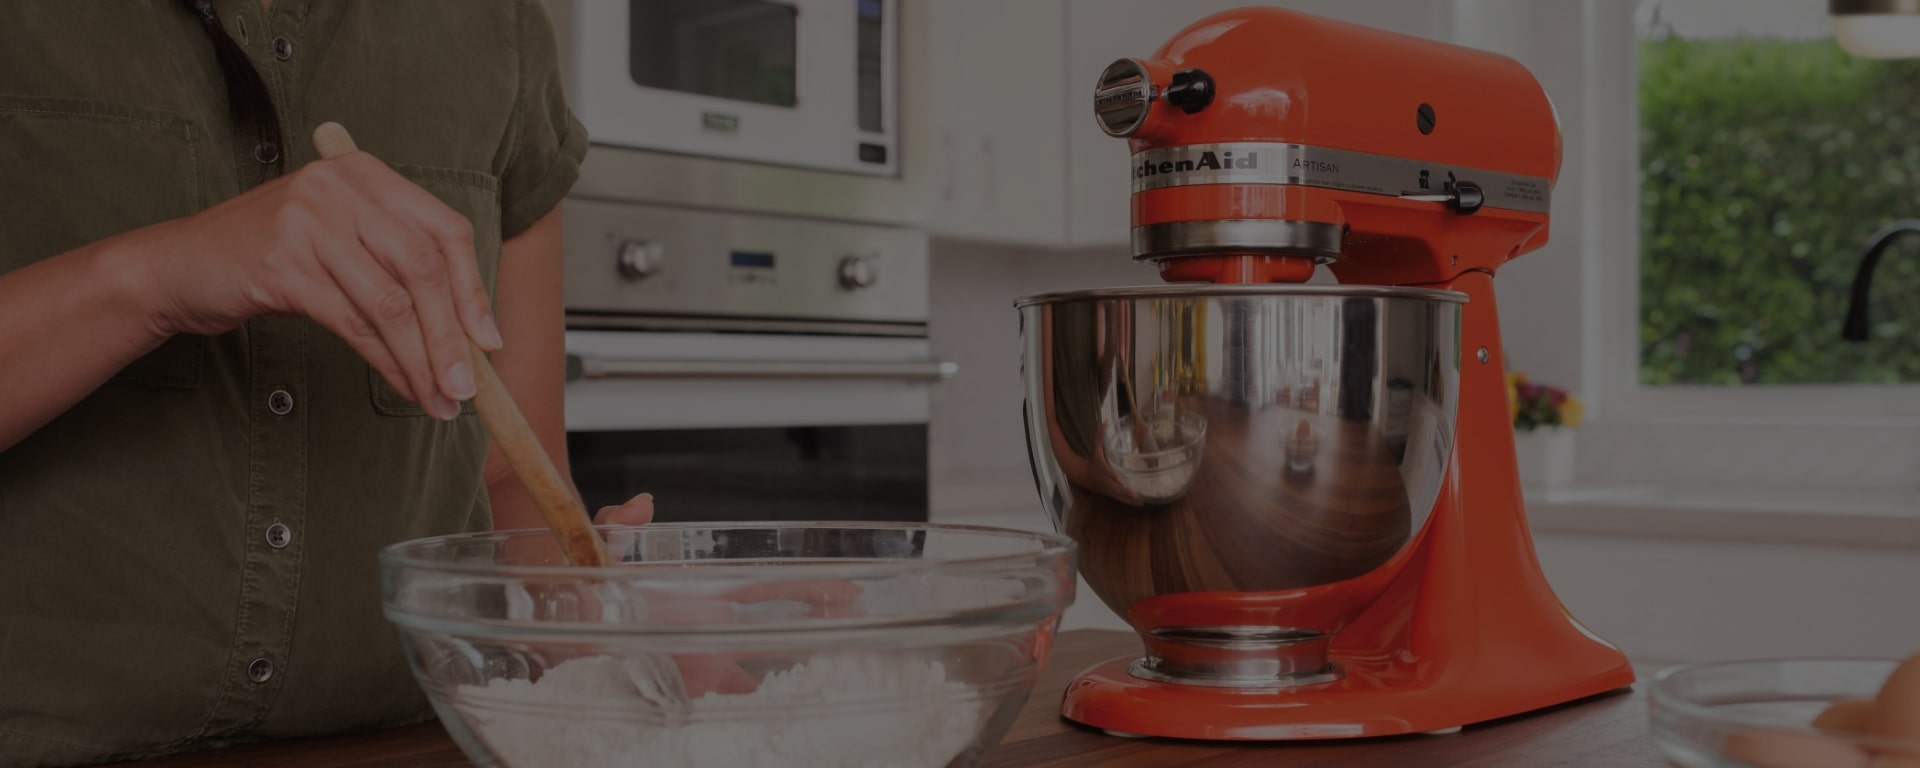 aumento do volume de vendas kitchenaid